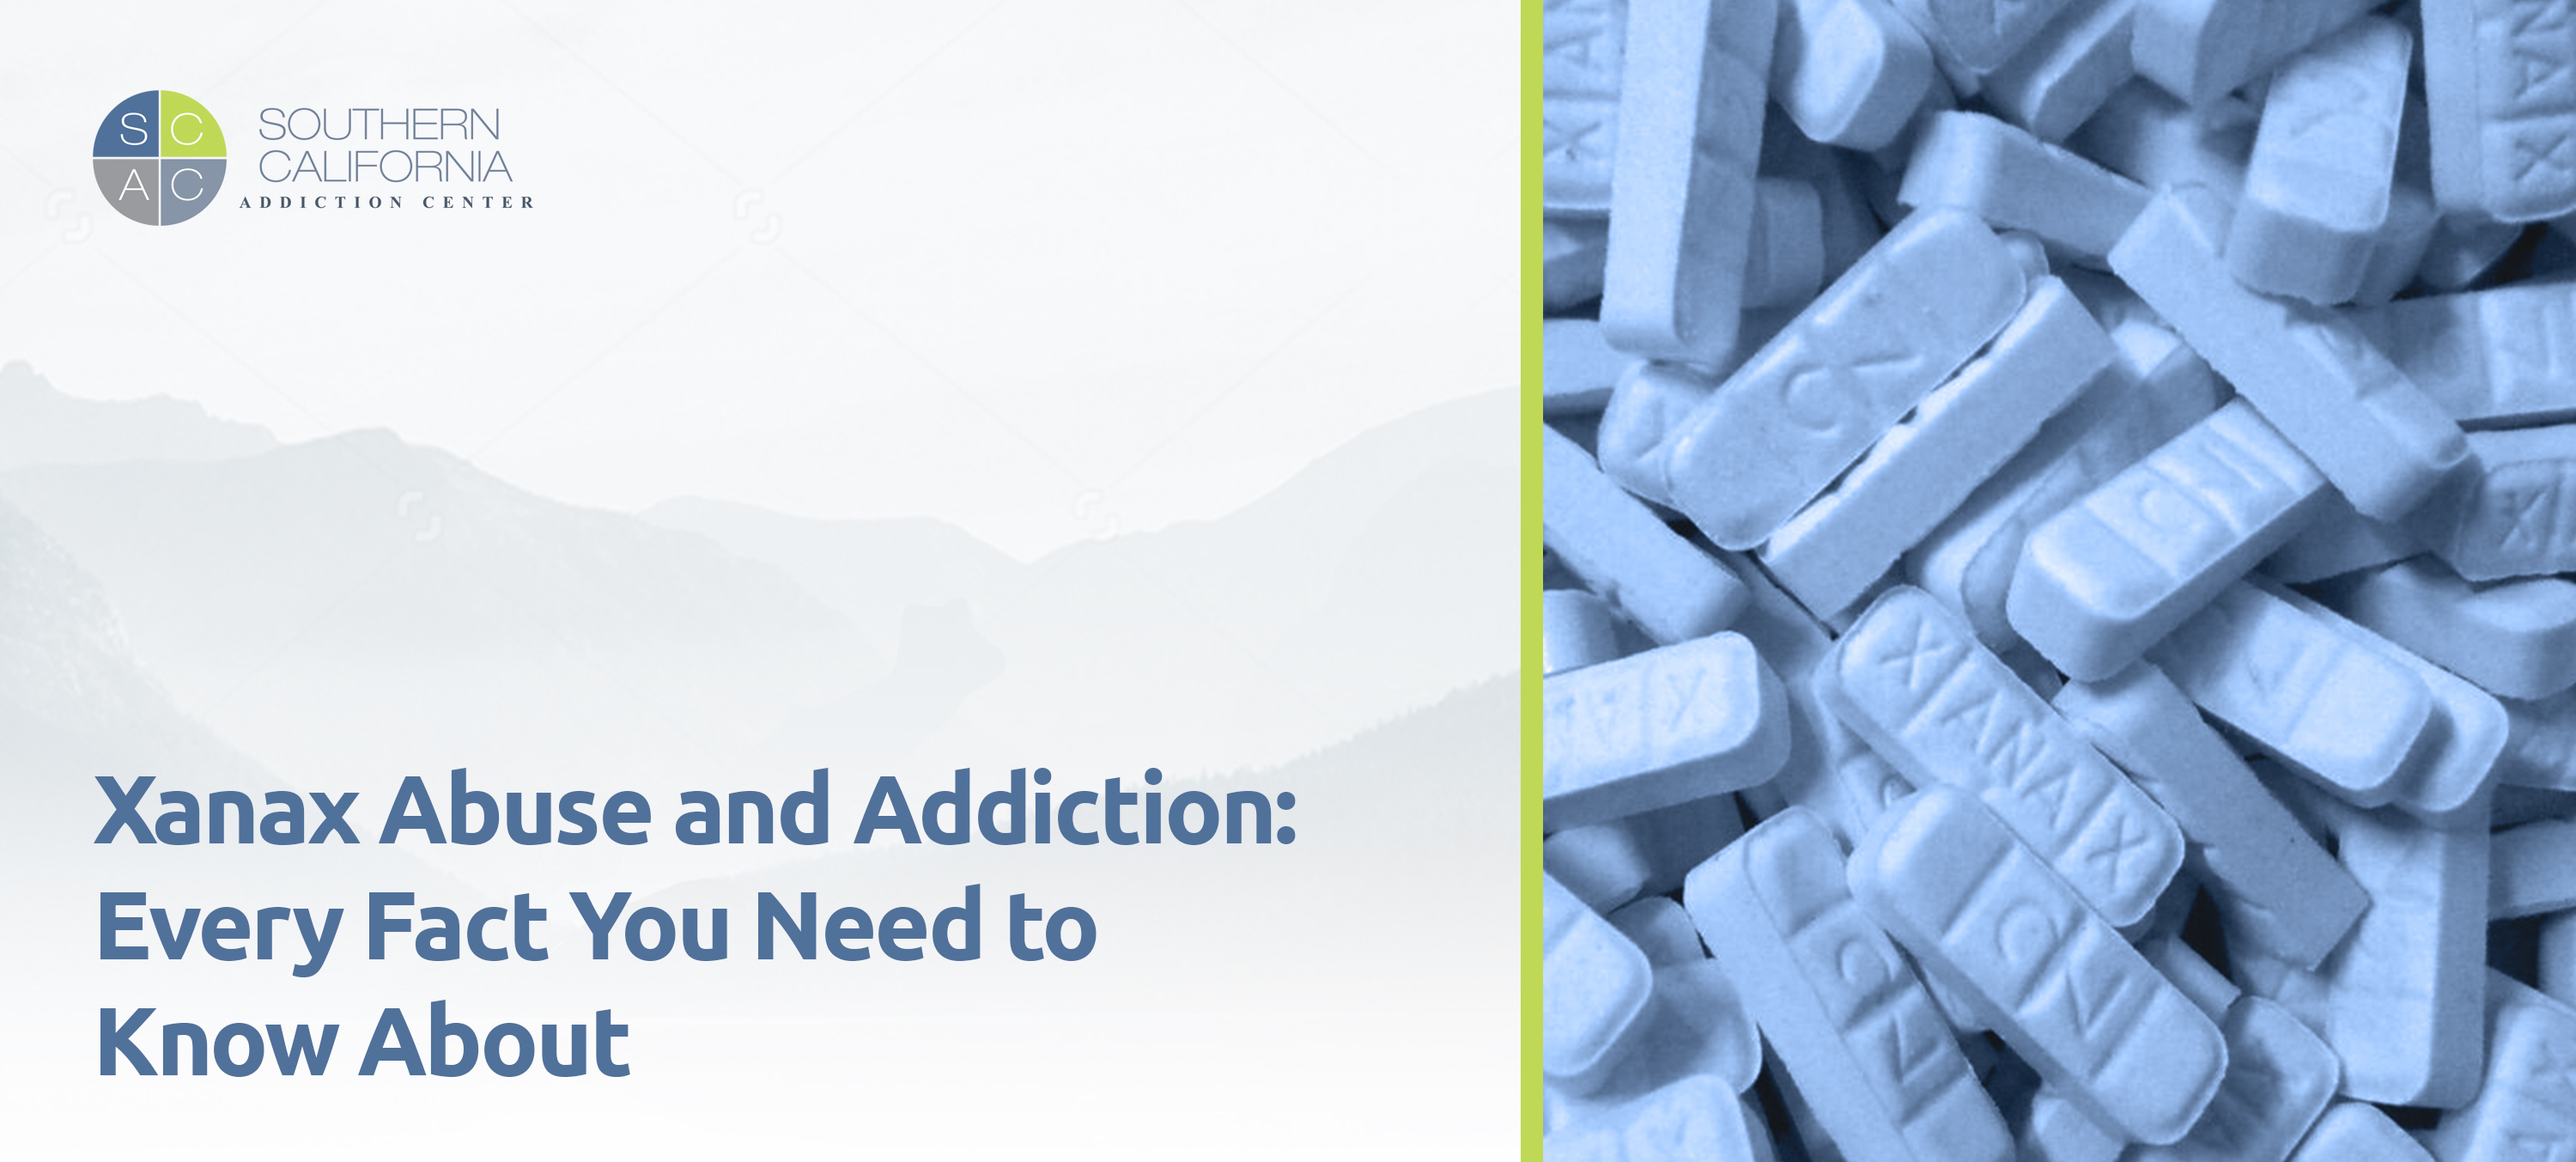 Xanax Xanax Abuse And Addiction Every Fact You Need To Know About